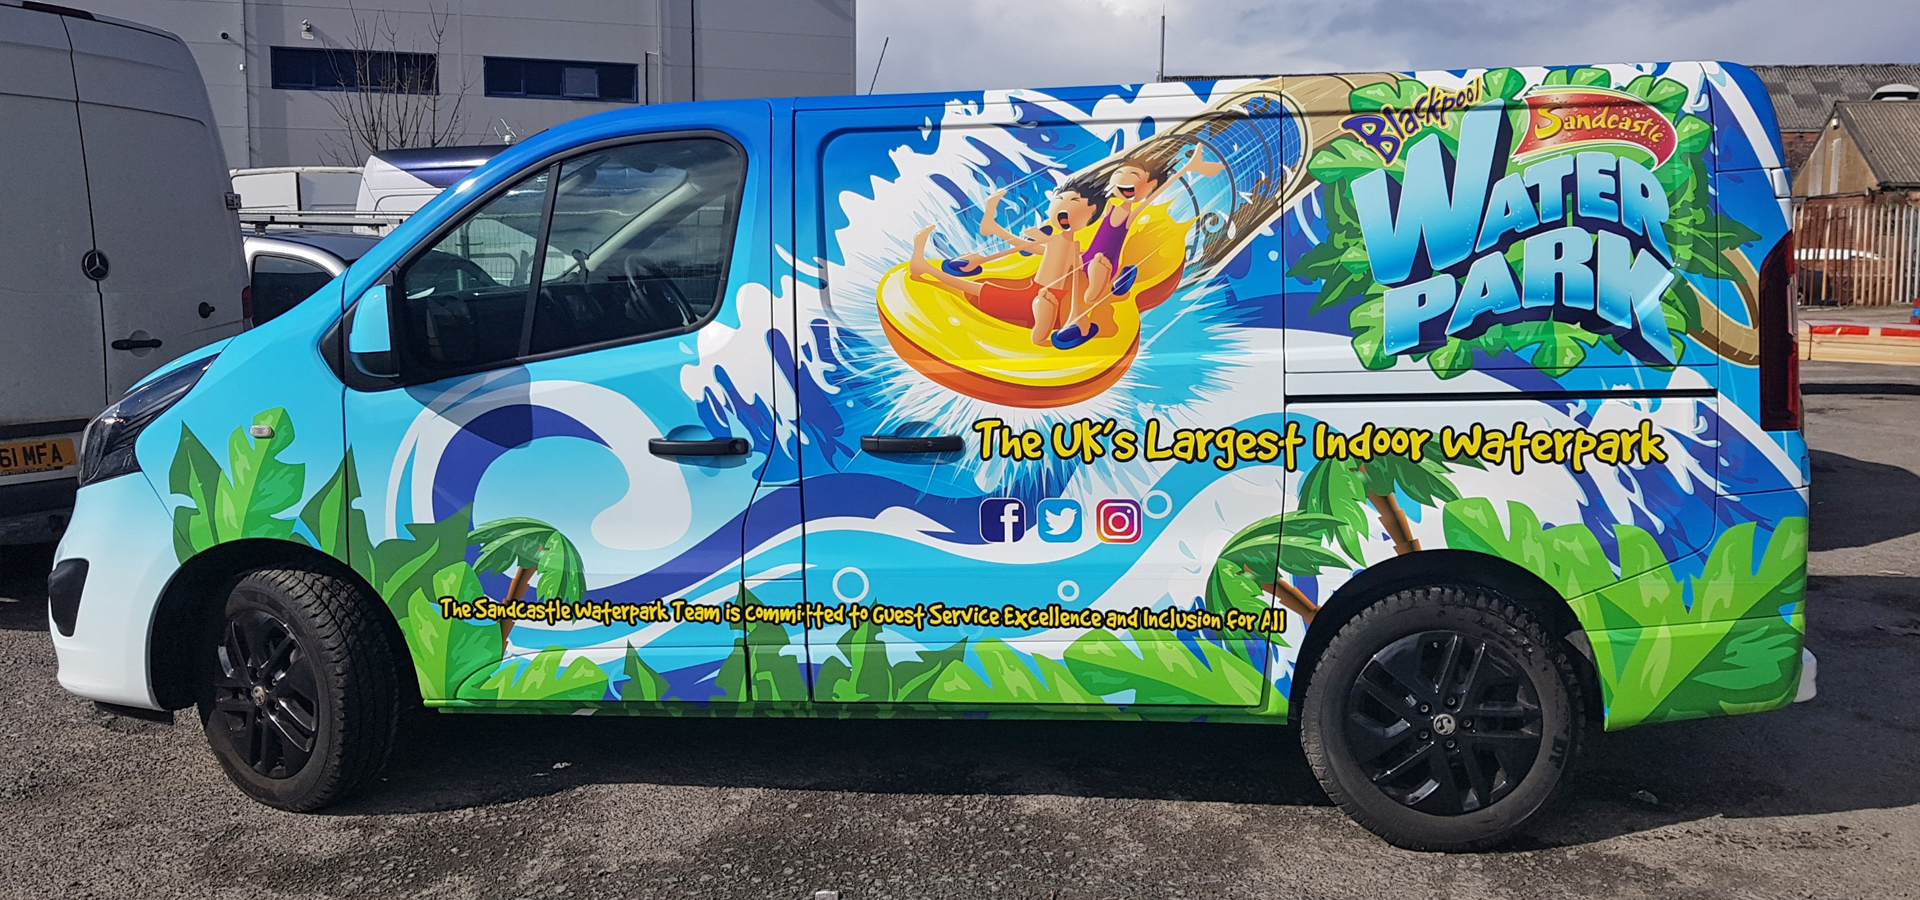 Sandcastle vehicle wraps from Heckford